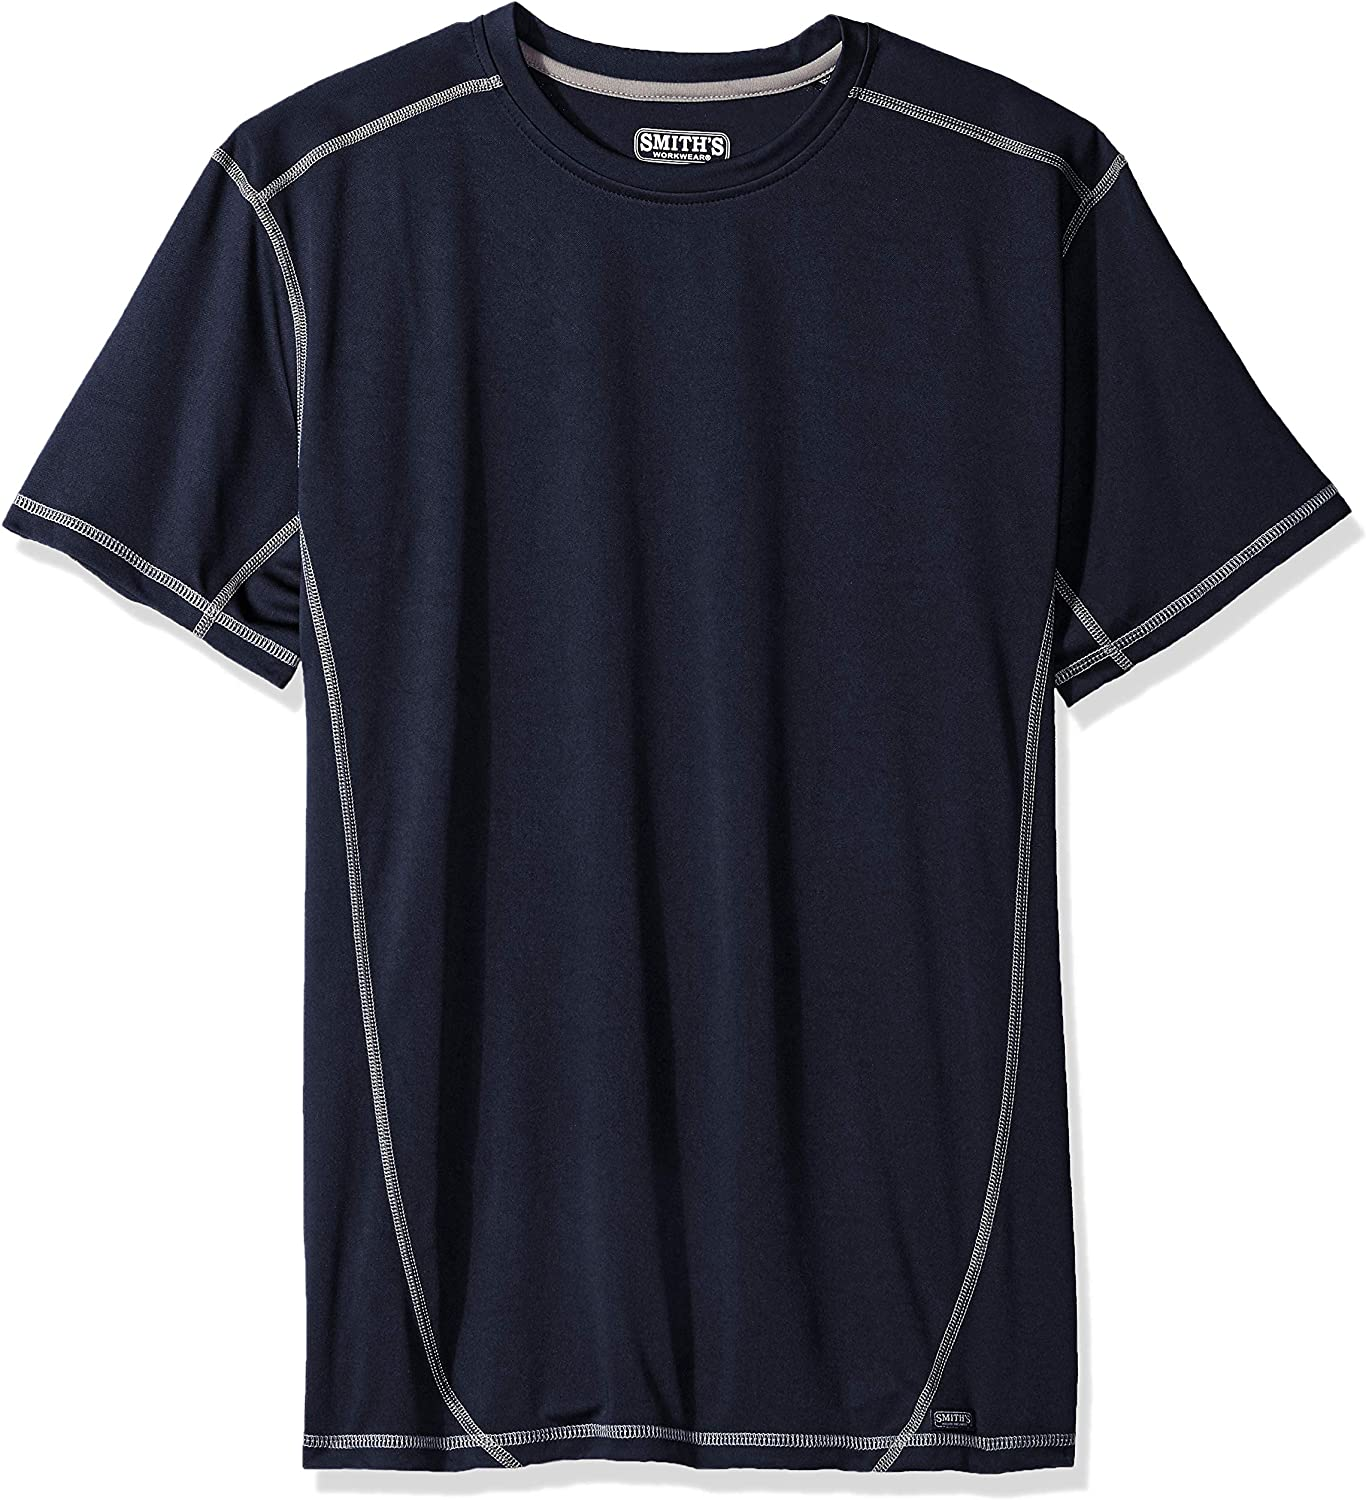 Smith's Workwear Men's Clearance SALE! Limited time! Performance High quality new Contrast Crew T-Shirt